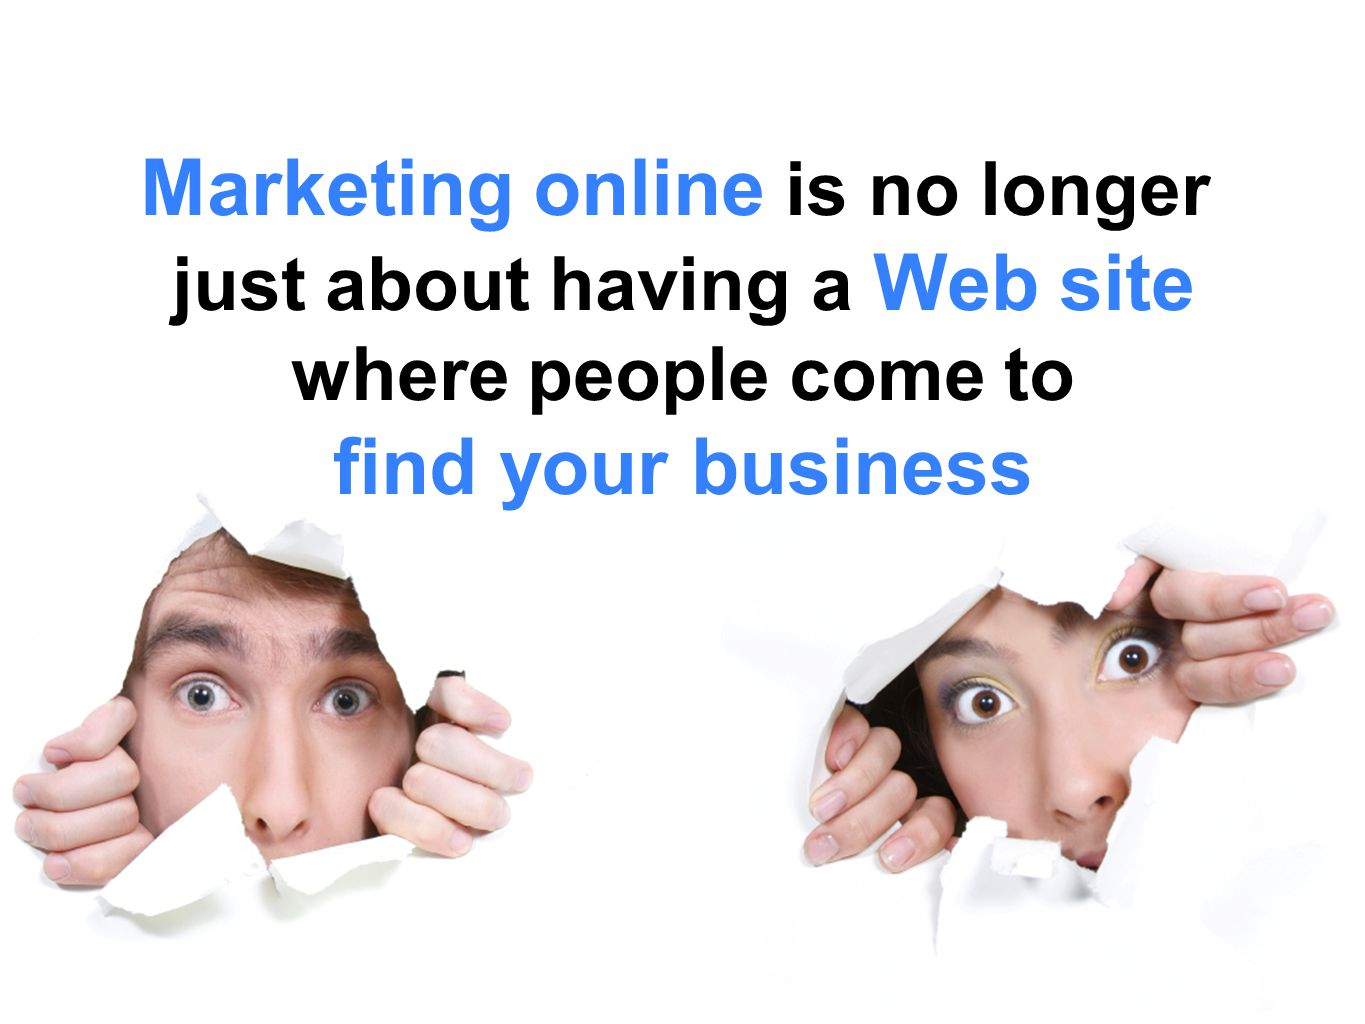 Marketing online is no longer just about having a Web site where people come to find your business